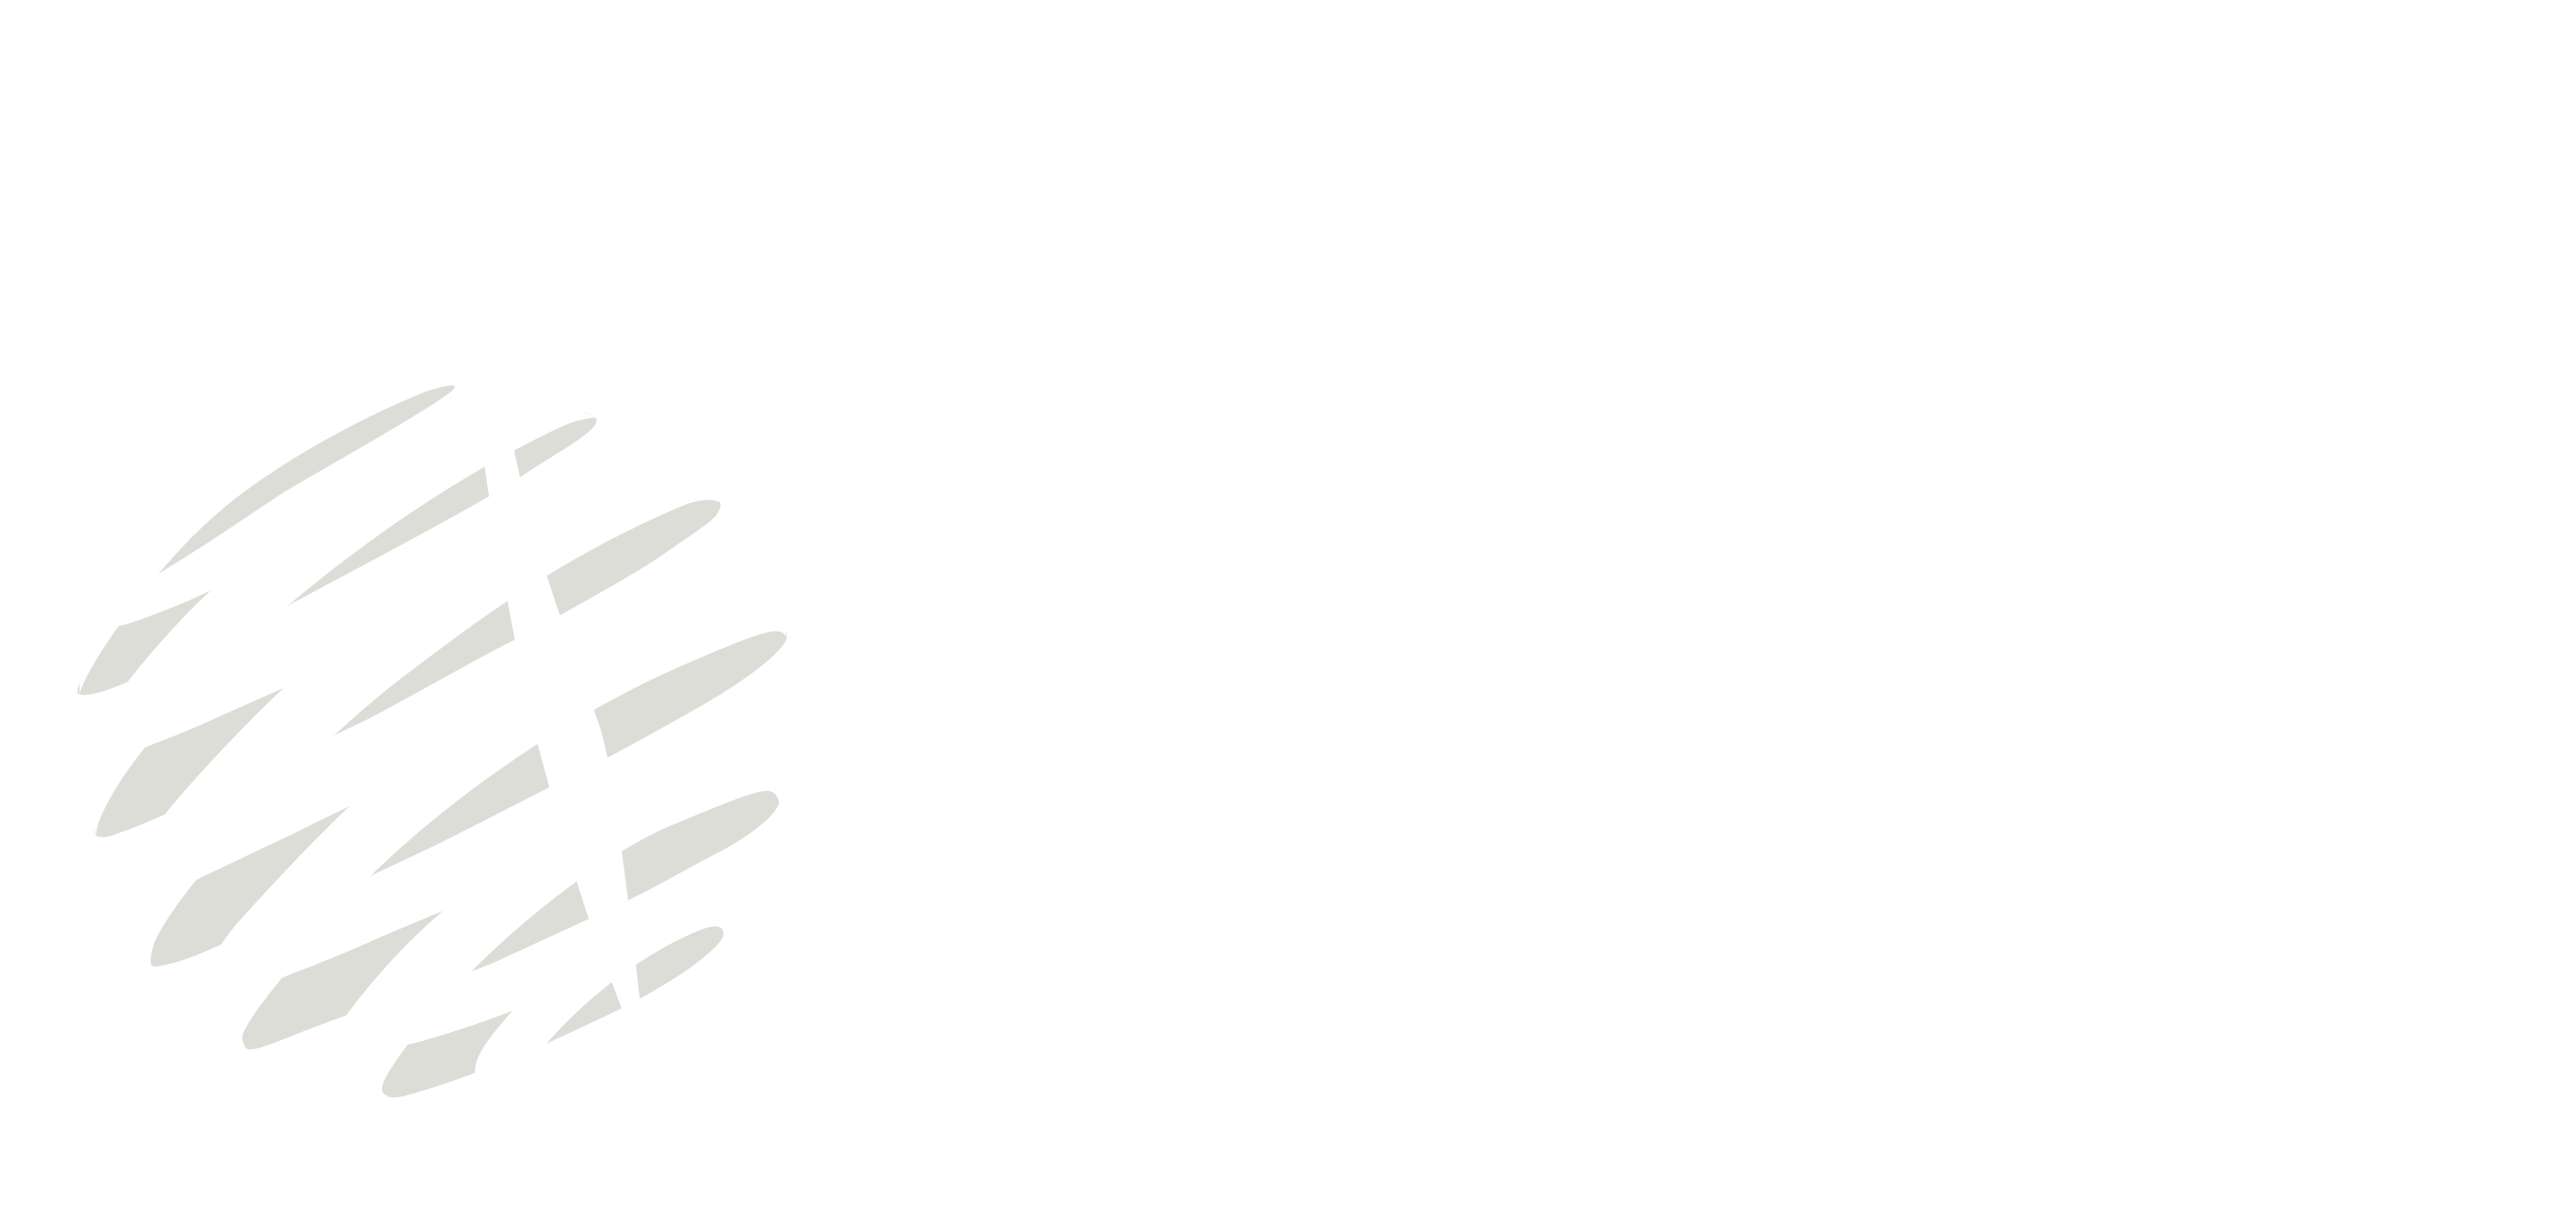 Global Kingdom Ministries